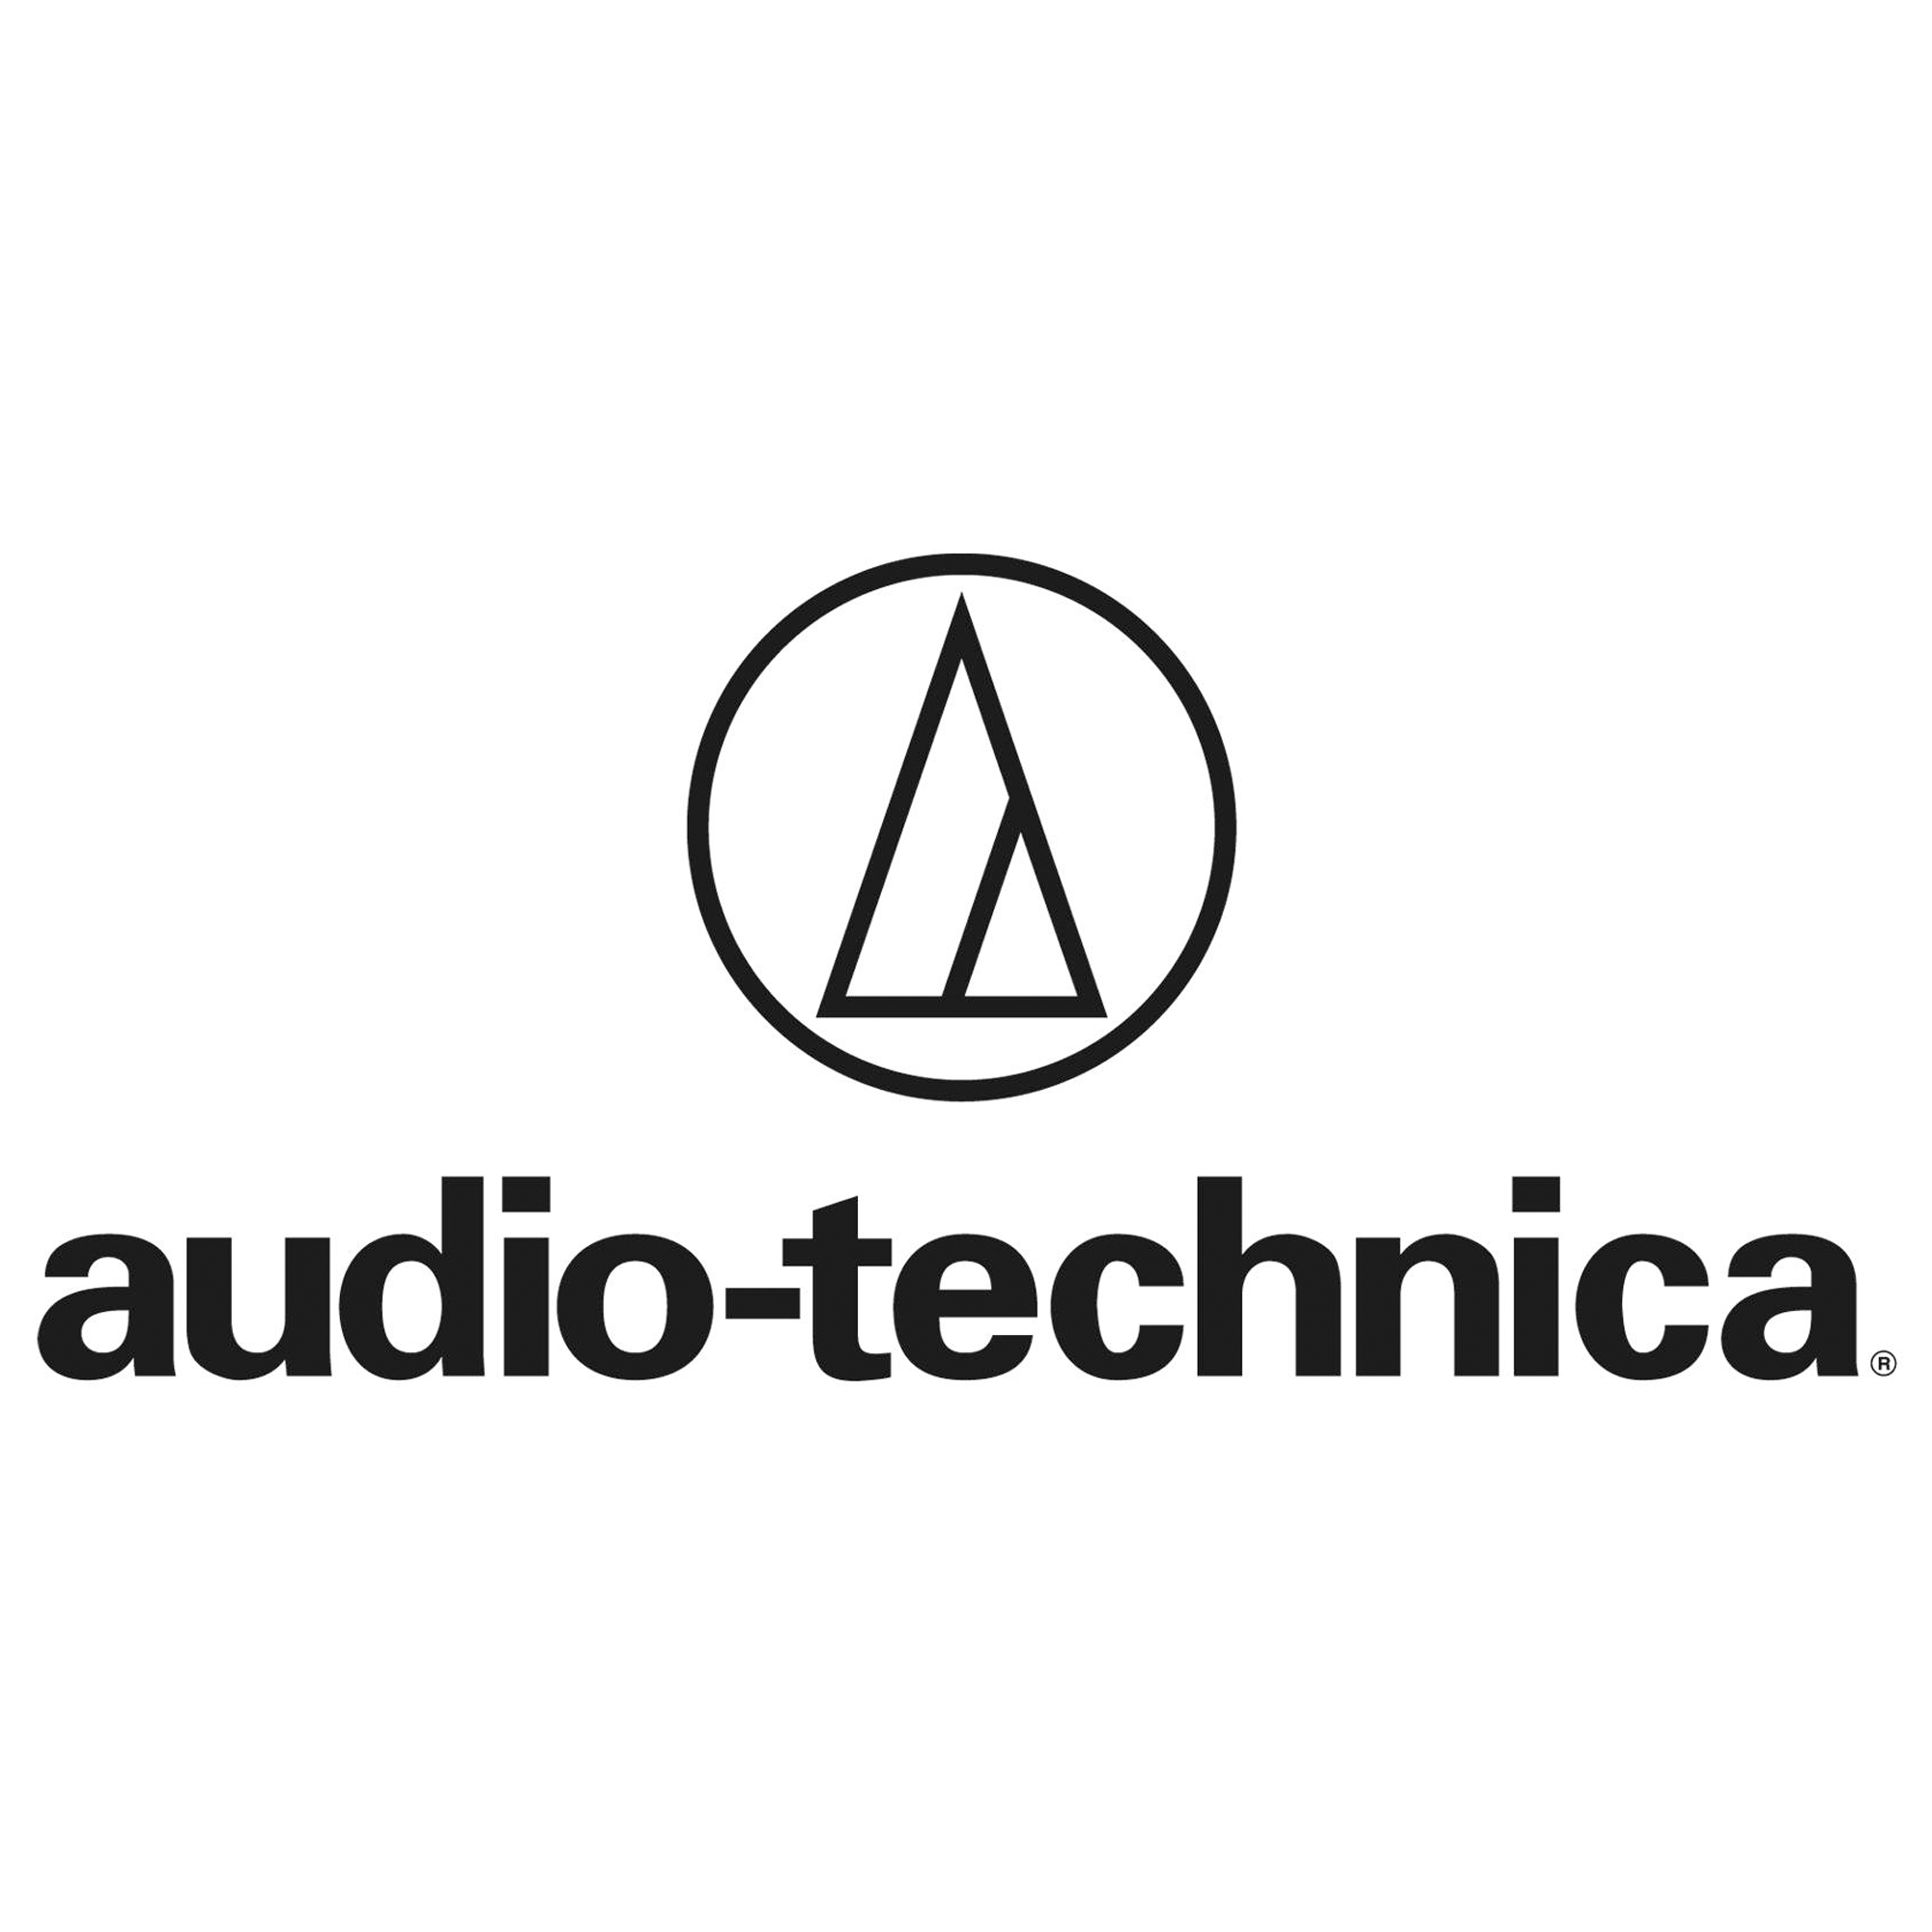 Audio-Technica AC100 Antenna Cable